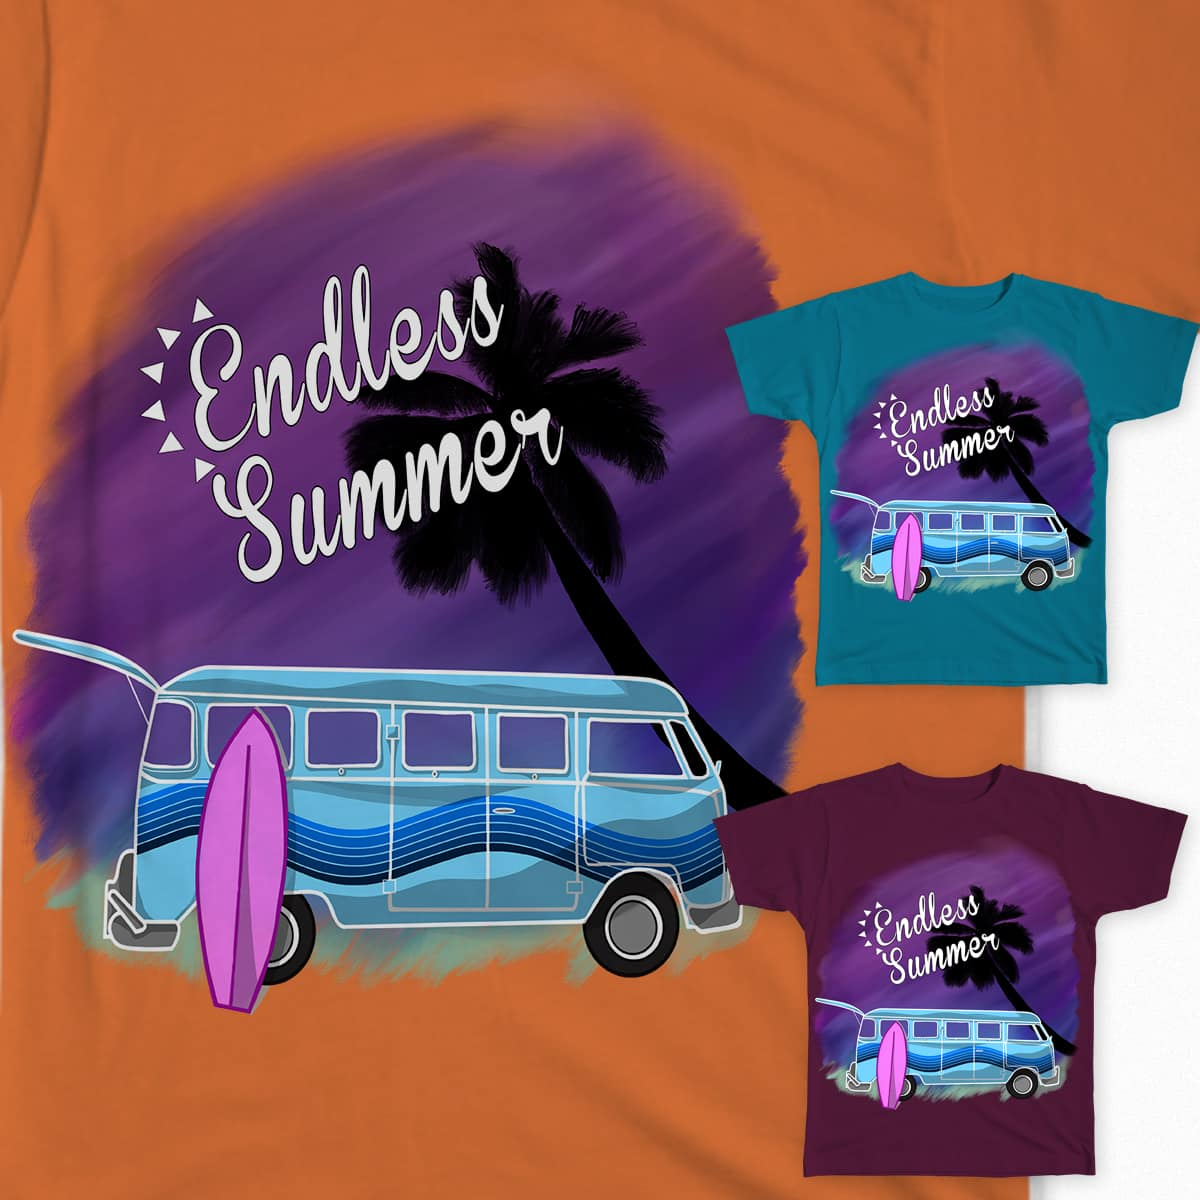 Endless summer by Natalie_Parker on Threadless